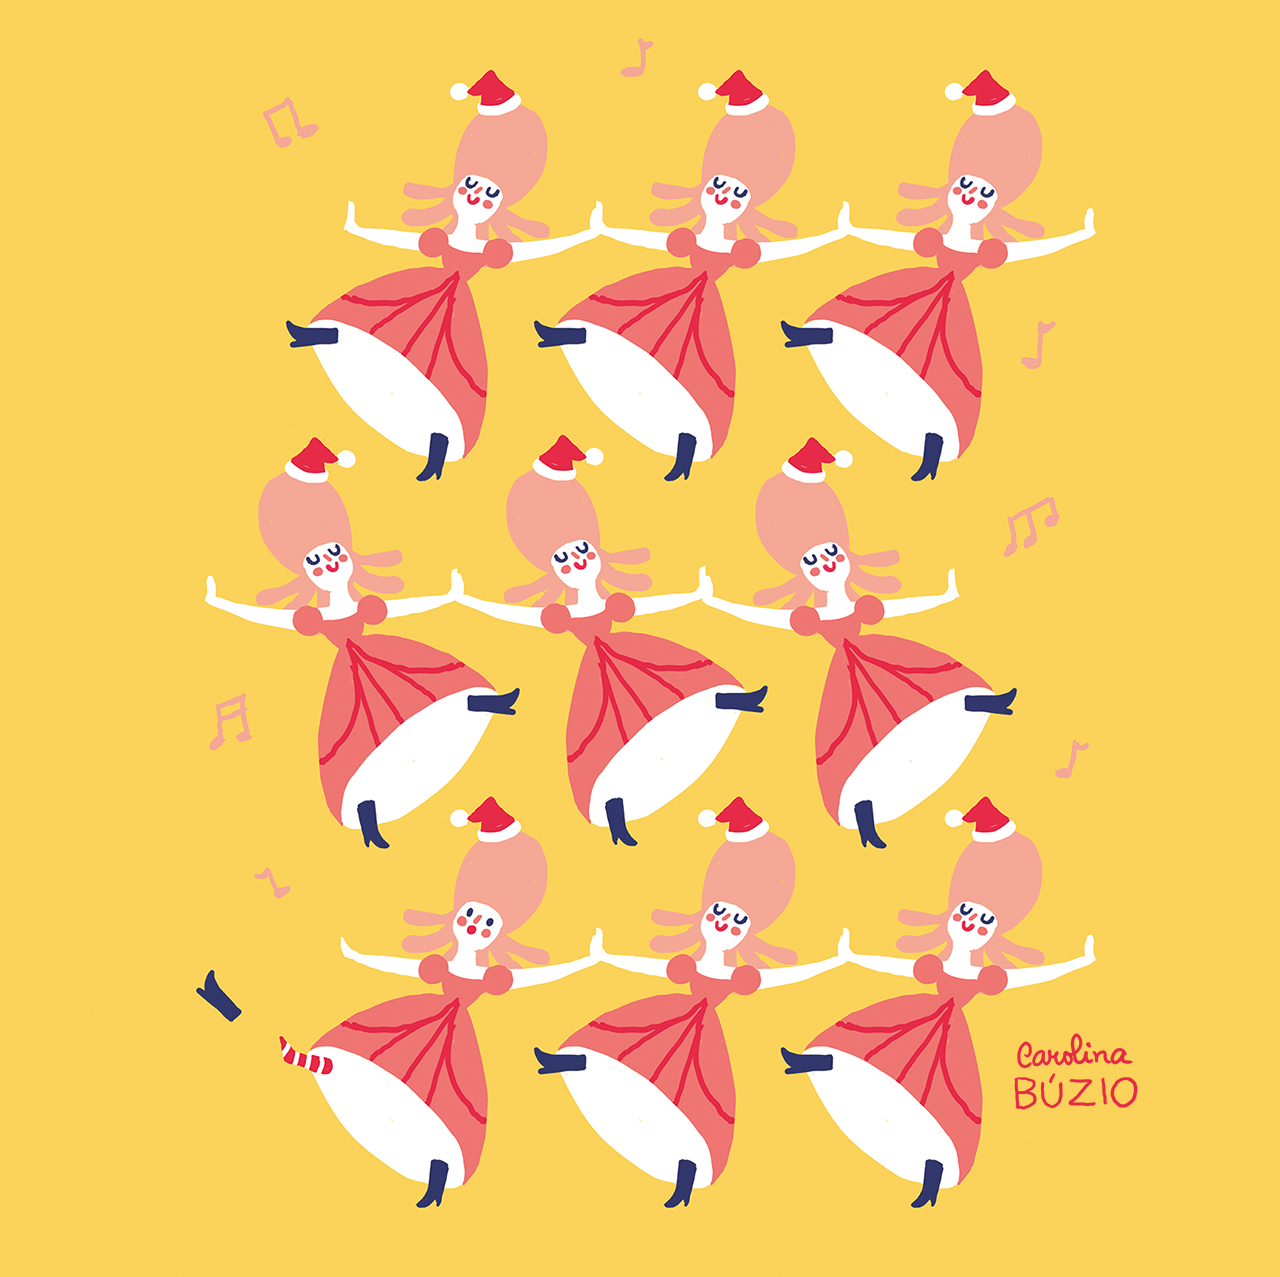 9 ladies dancing and 9 days for december to start by carolina buzio  [ 1280 x 1277 Pixel ]